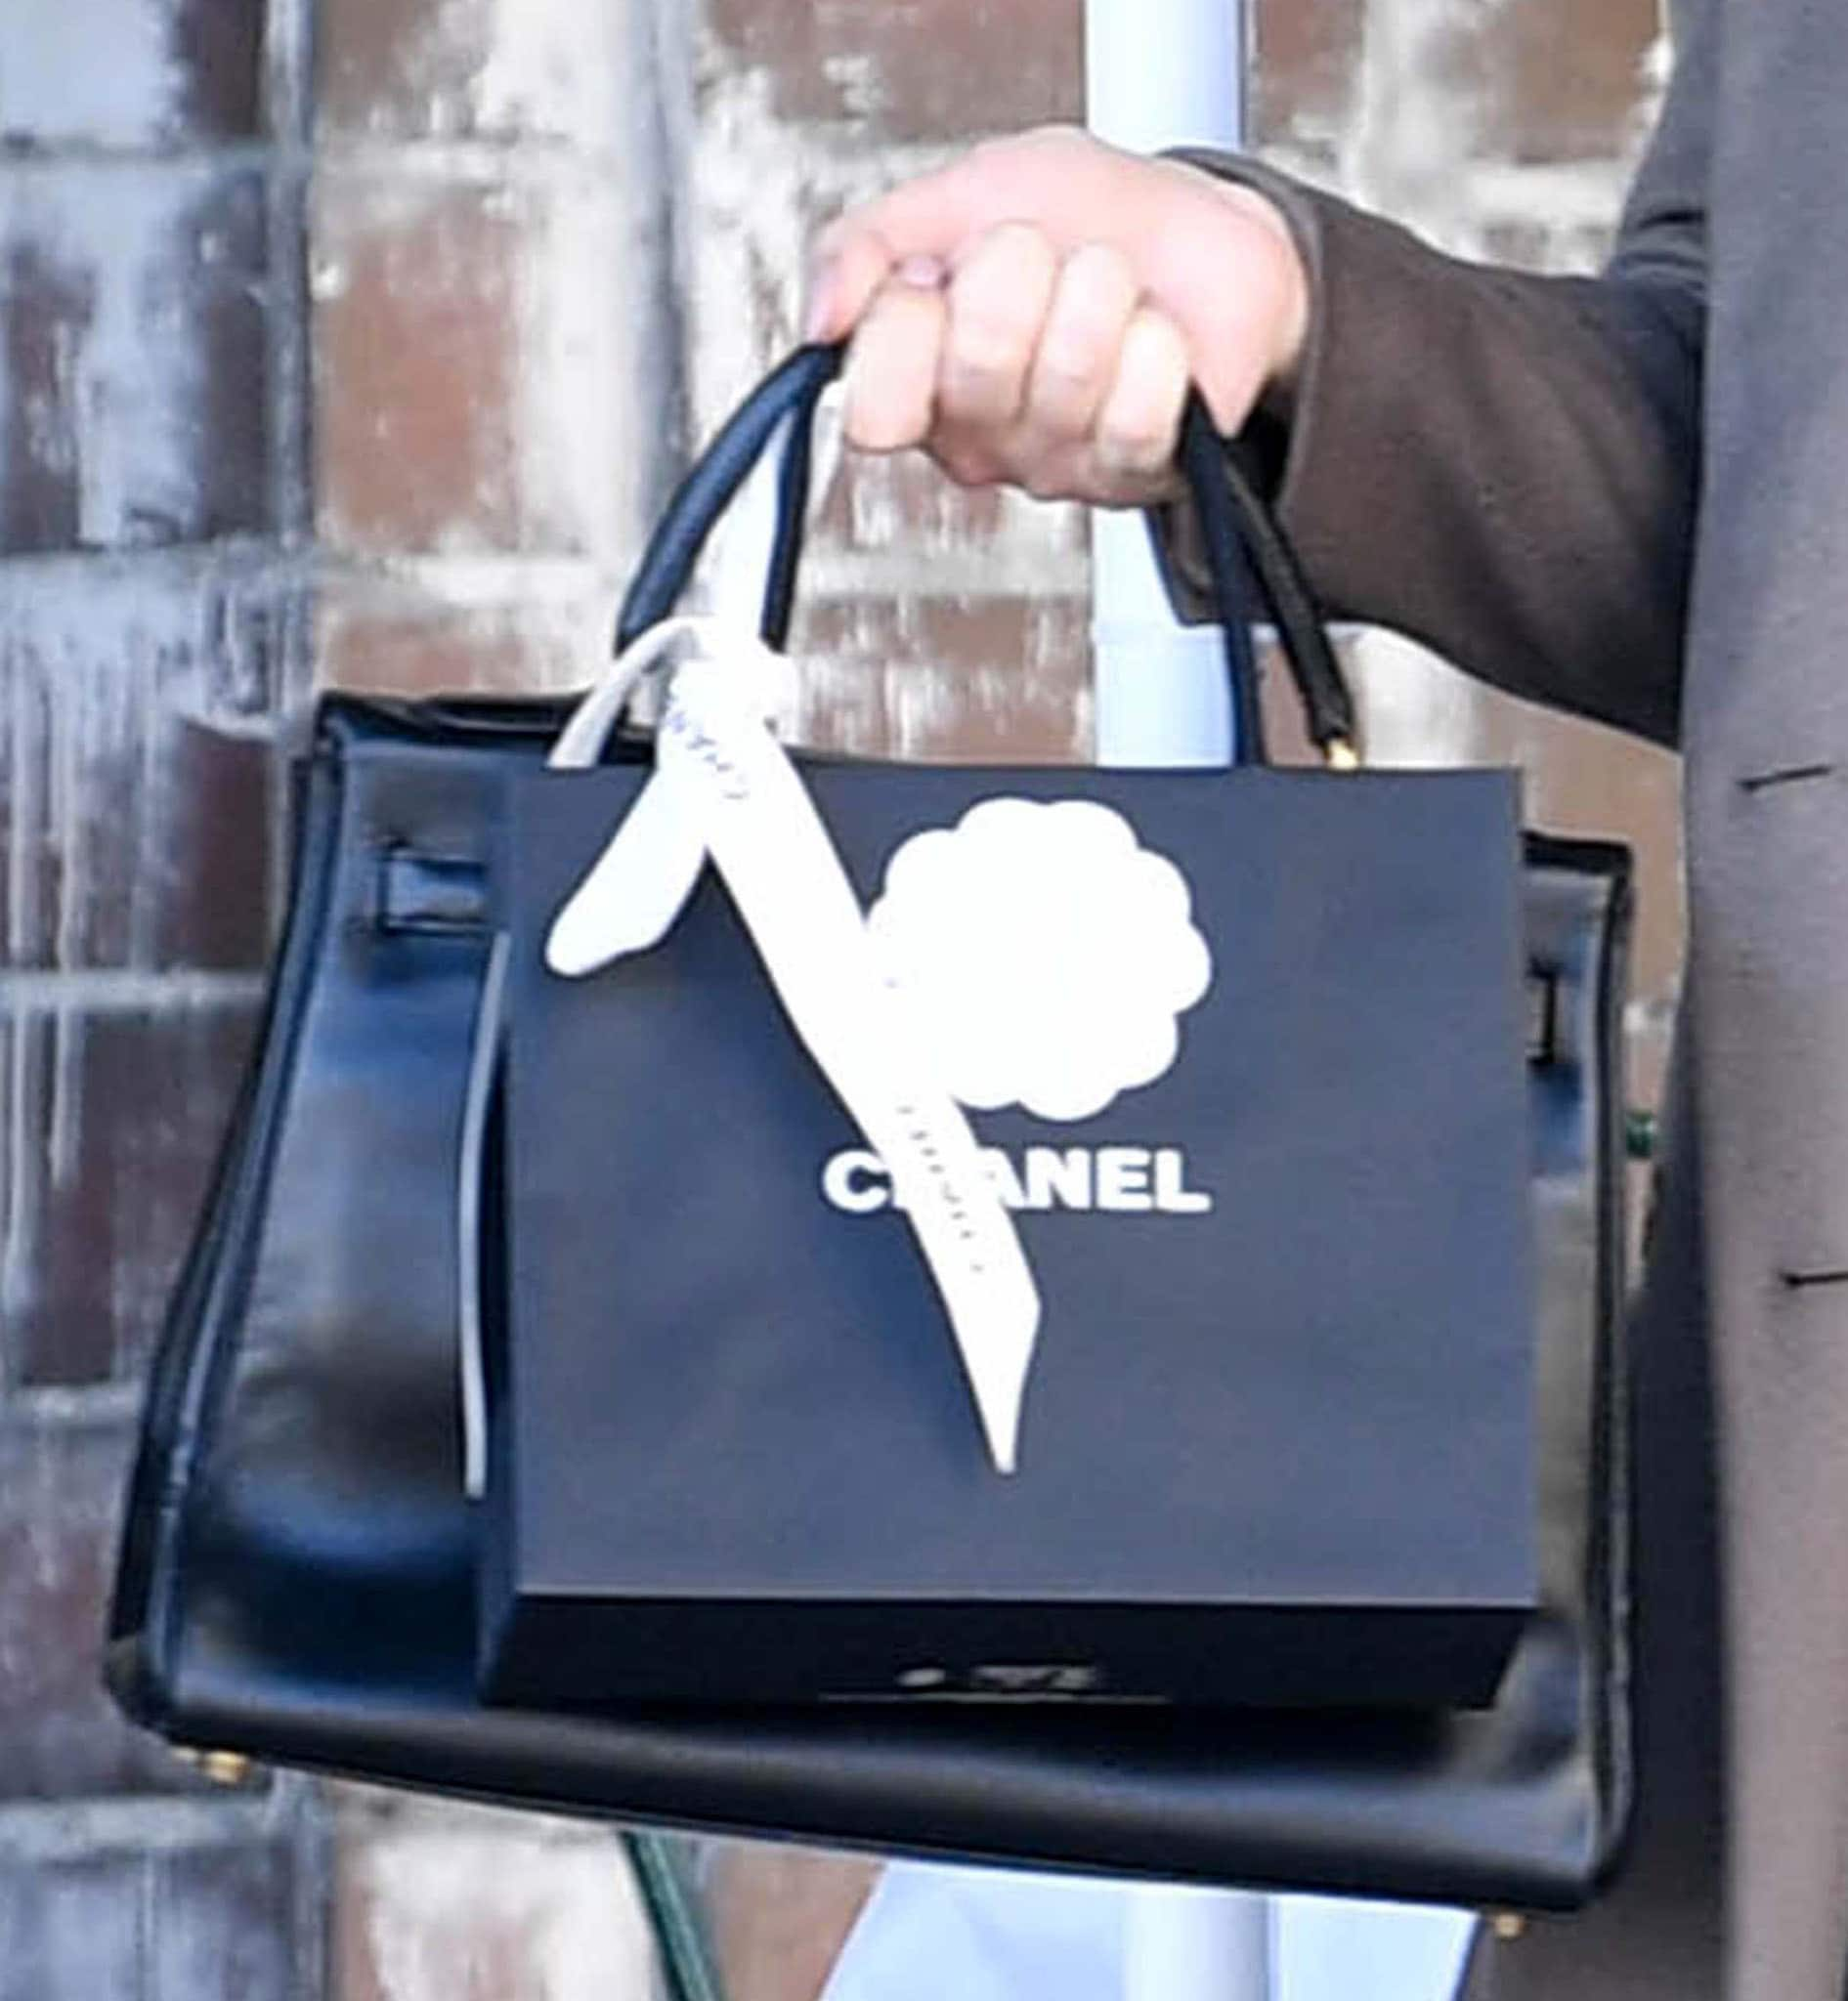 Kelly Osbourne carrying a Chanel paper bag while on a solo shopping trip in Los Angeles on November 18, 2020